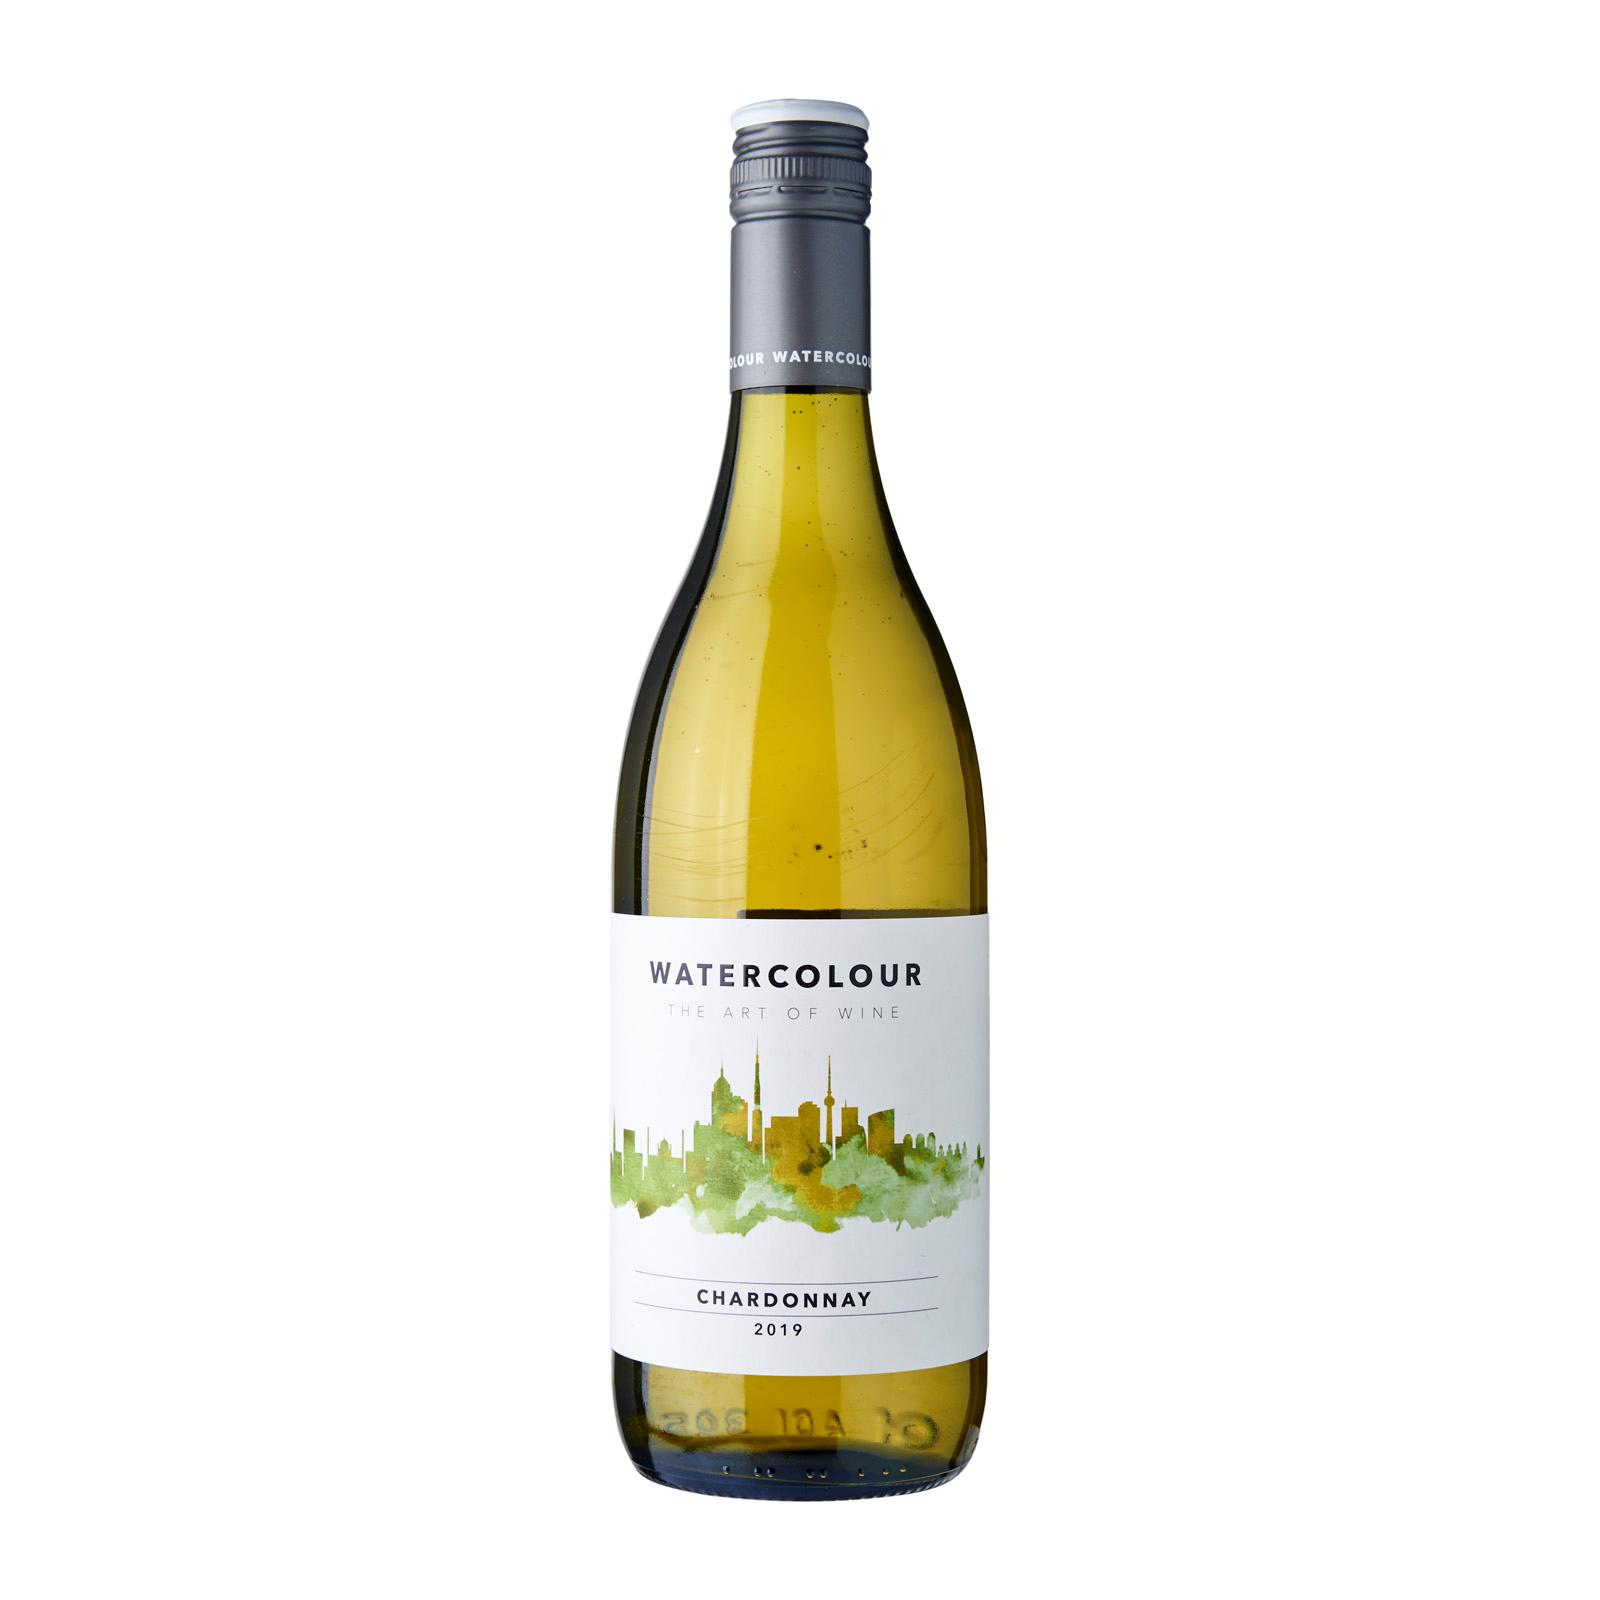 Watercolour Chardonnay White Wine Australia